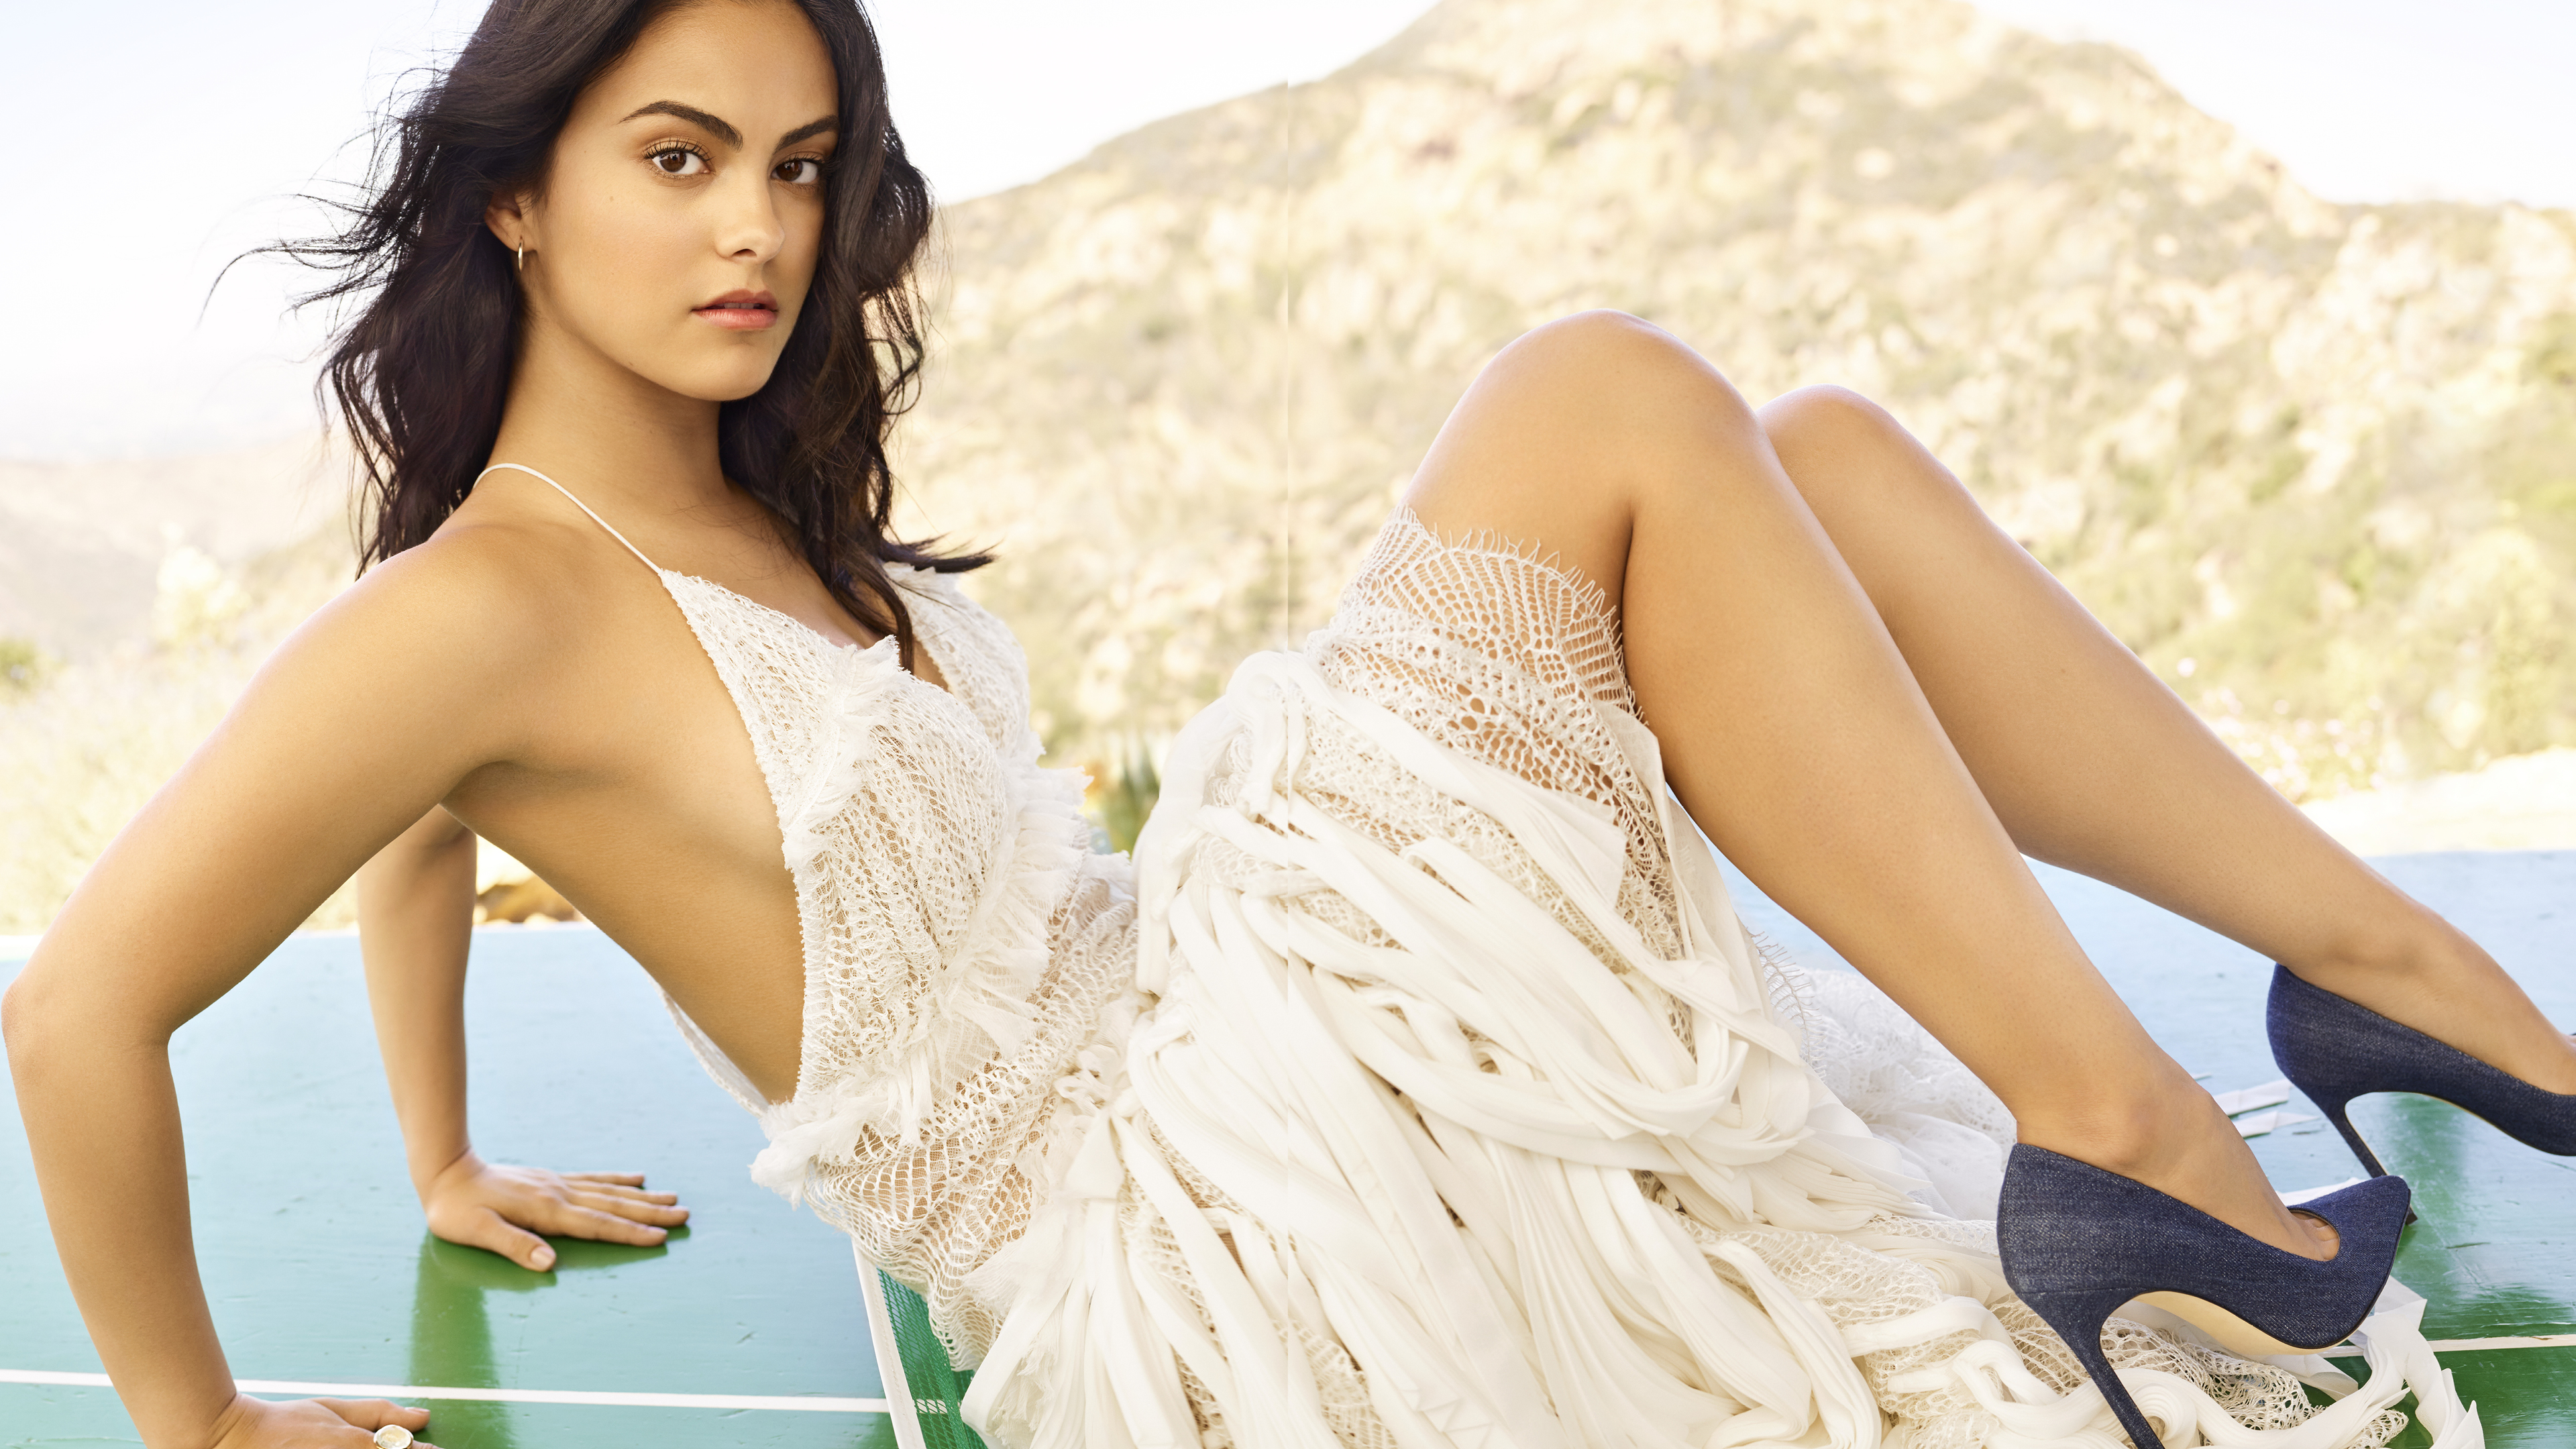 camila mendes 5k 1543104572 - Camila Mendes 5k - hd-wallpapers, girls wallpapers, celebrities wallpapers, camila mendes wallpapers, 5k wallpapers, 4k-wallpapers